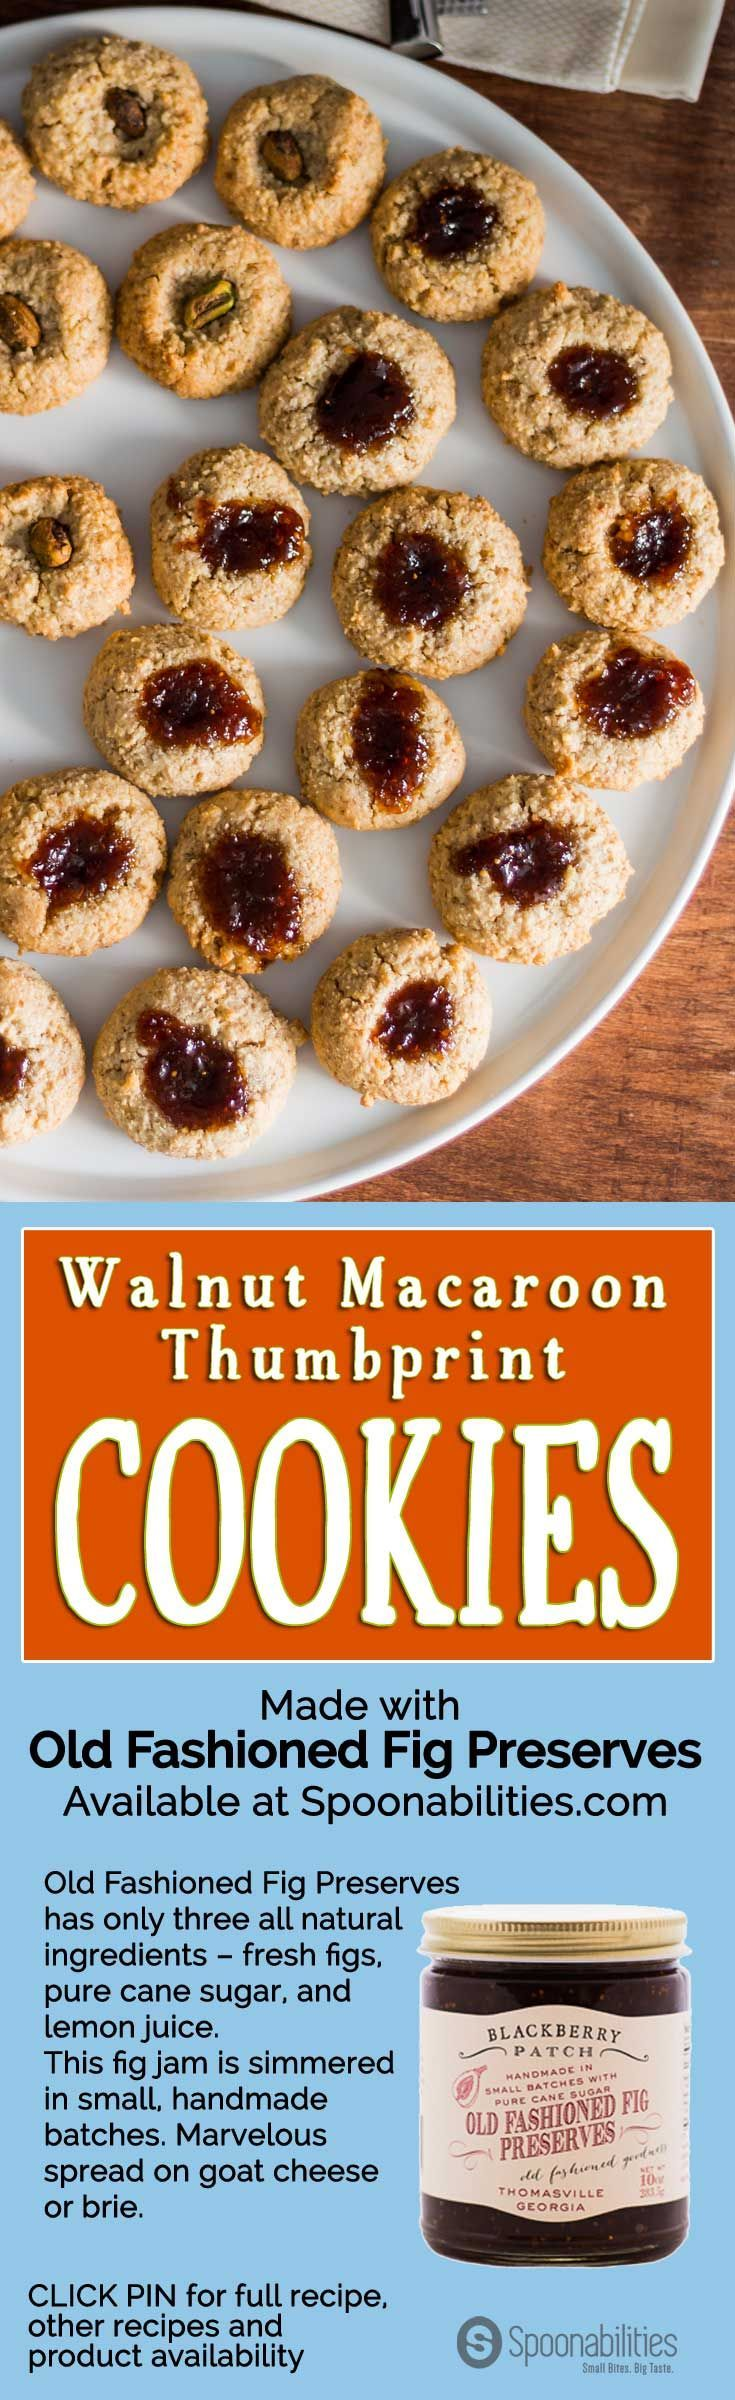 Walnut Macaroon Thumbprint Cookies with Old-Fashioned Fig Preserves by Blackberry Patch in the center. Flour-less dessert recipe typically served during Passover. You can have fun putting many different jams or nuts in the center. Available at Spoonabilities.com via @Spoonabilities